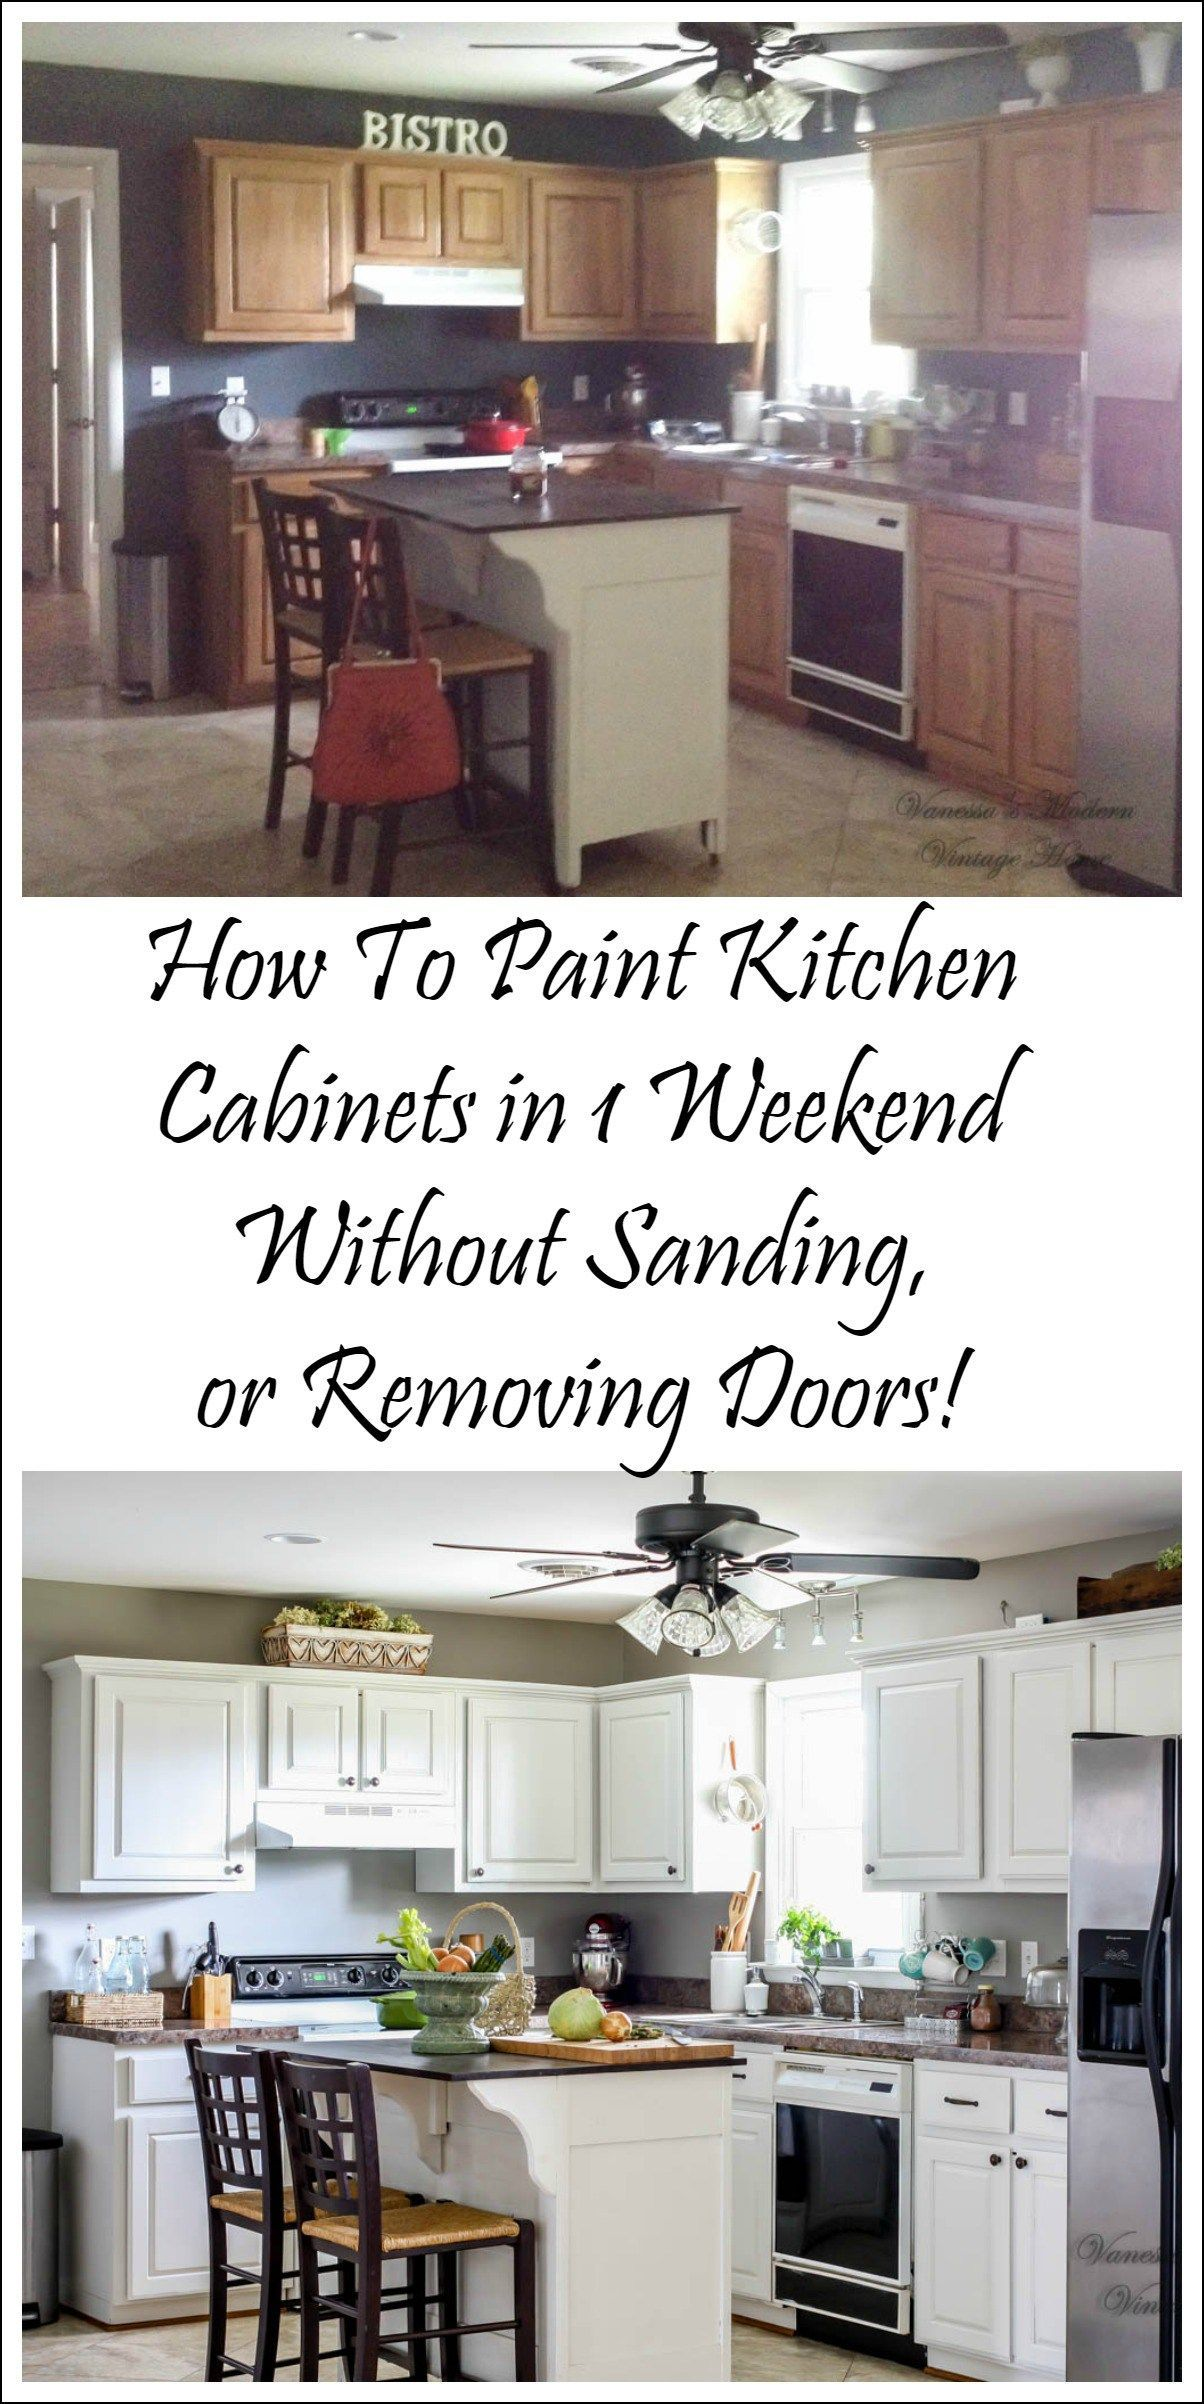 Cabinets Doors Kitchen Painted Removing Paint Kitchen Cabinets White In One Painting Kitchen Cabinets White Painting Kitchen Cabinets New Kitchen Cabinets